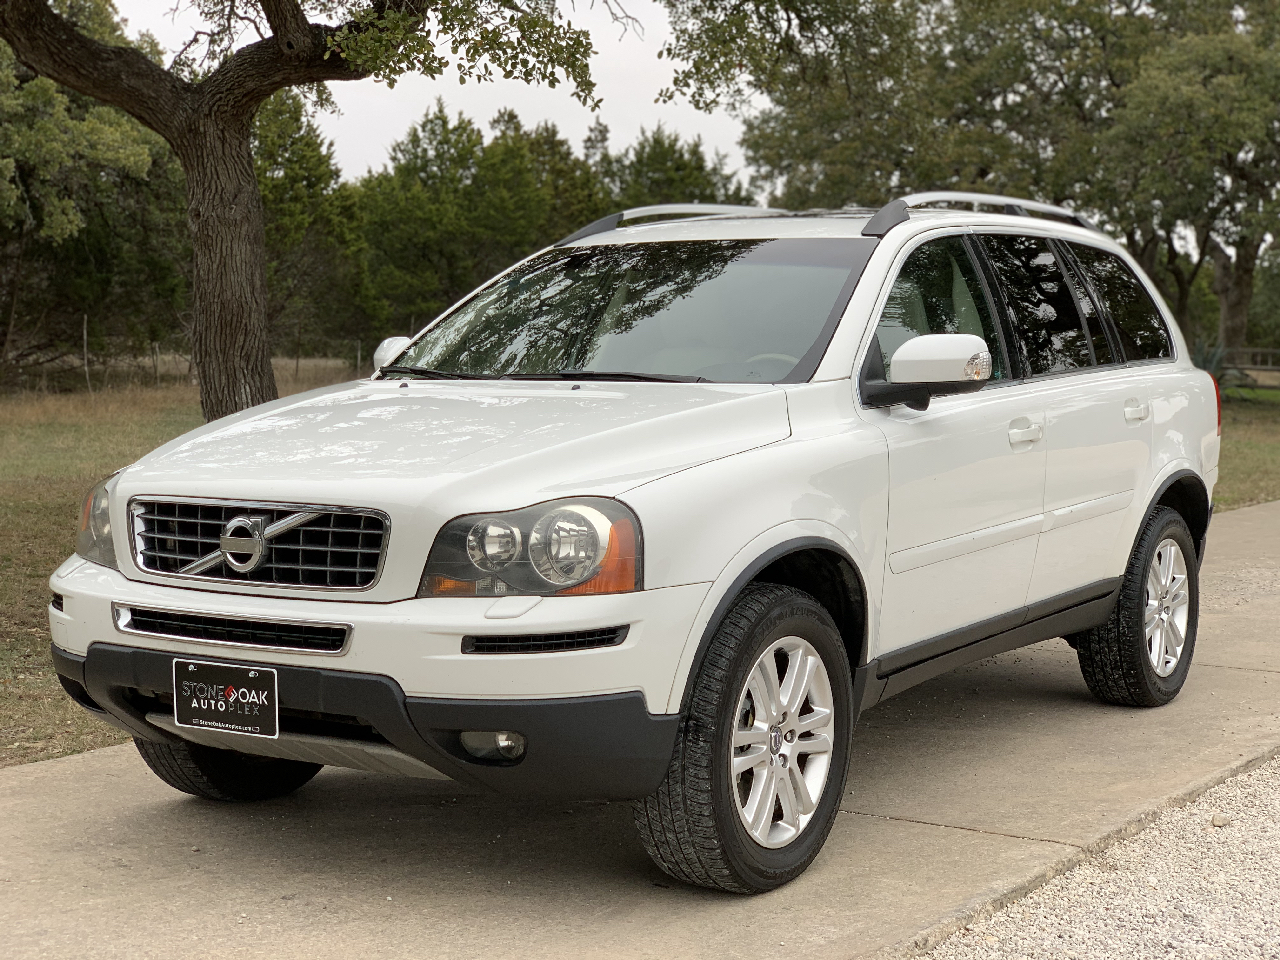 Volvo XC90 FWD 4dr I6 2011